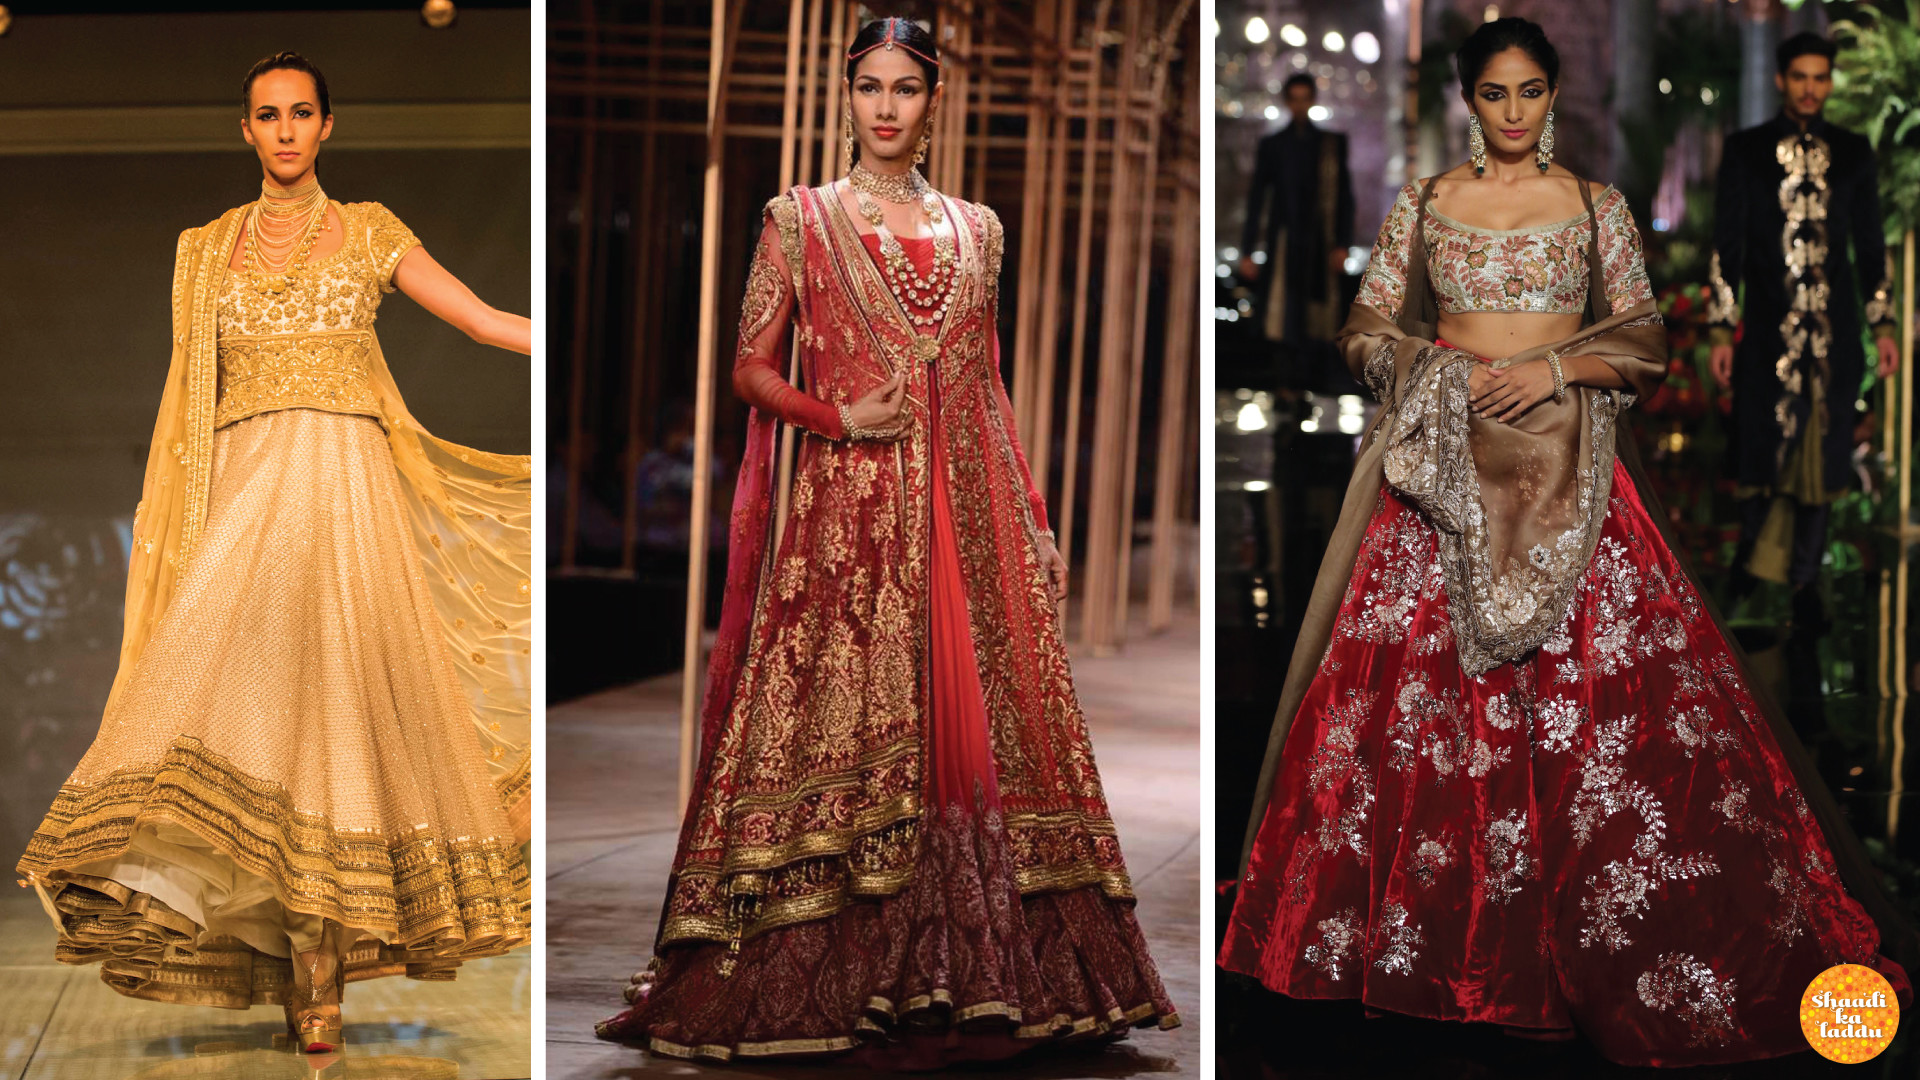 Designer bridal collection lehengas in ivory, red and silver